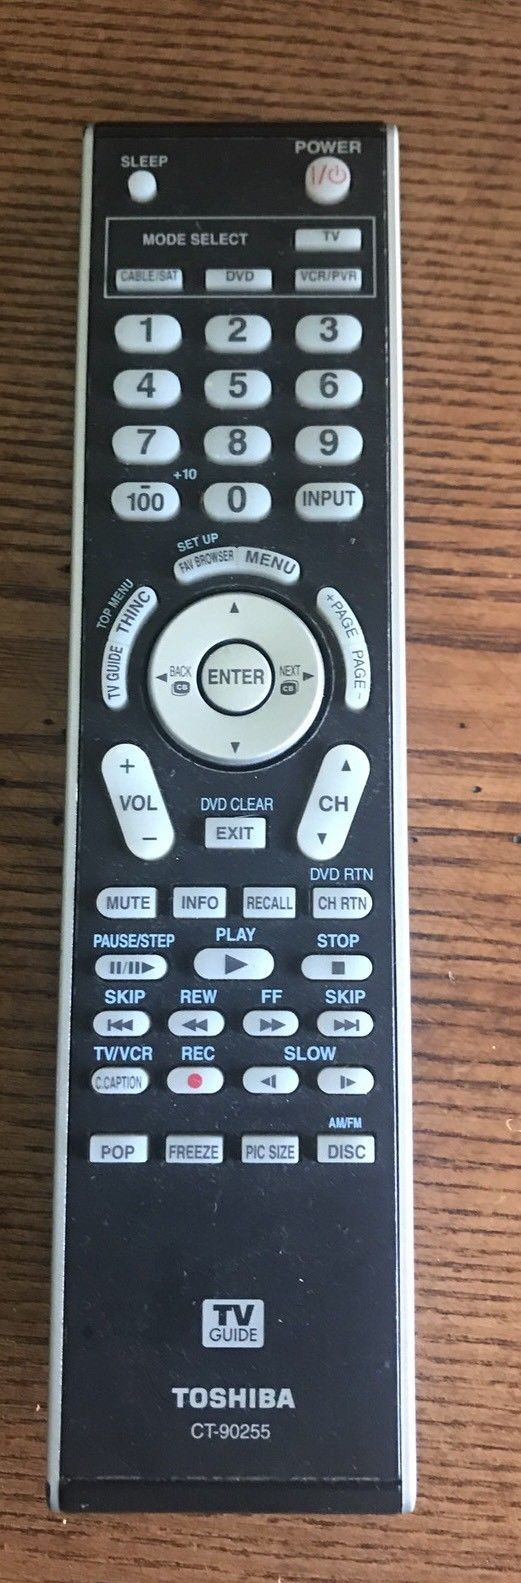 0 0-47-Original Used Authentic Refurbished OEM  Remote Control Genuine Tested Working toshiba CT-90255-image